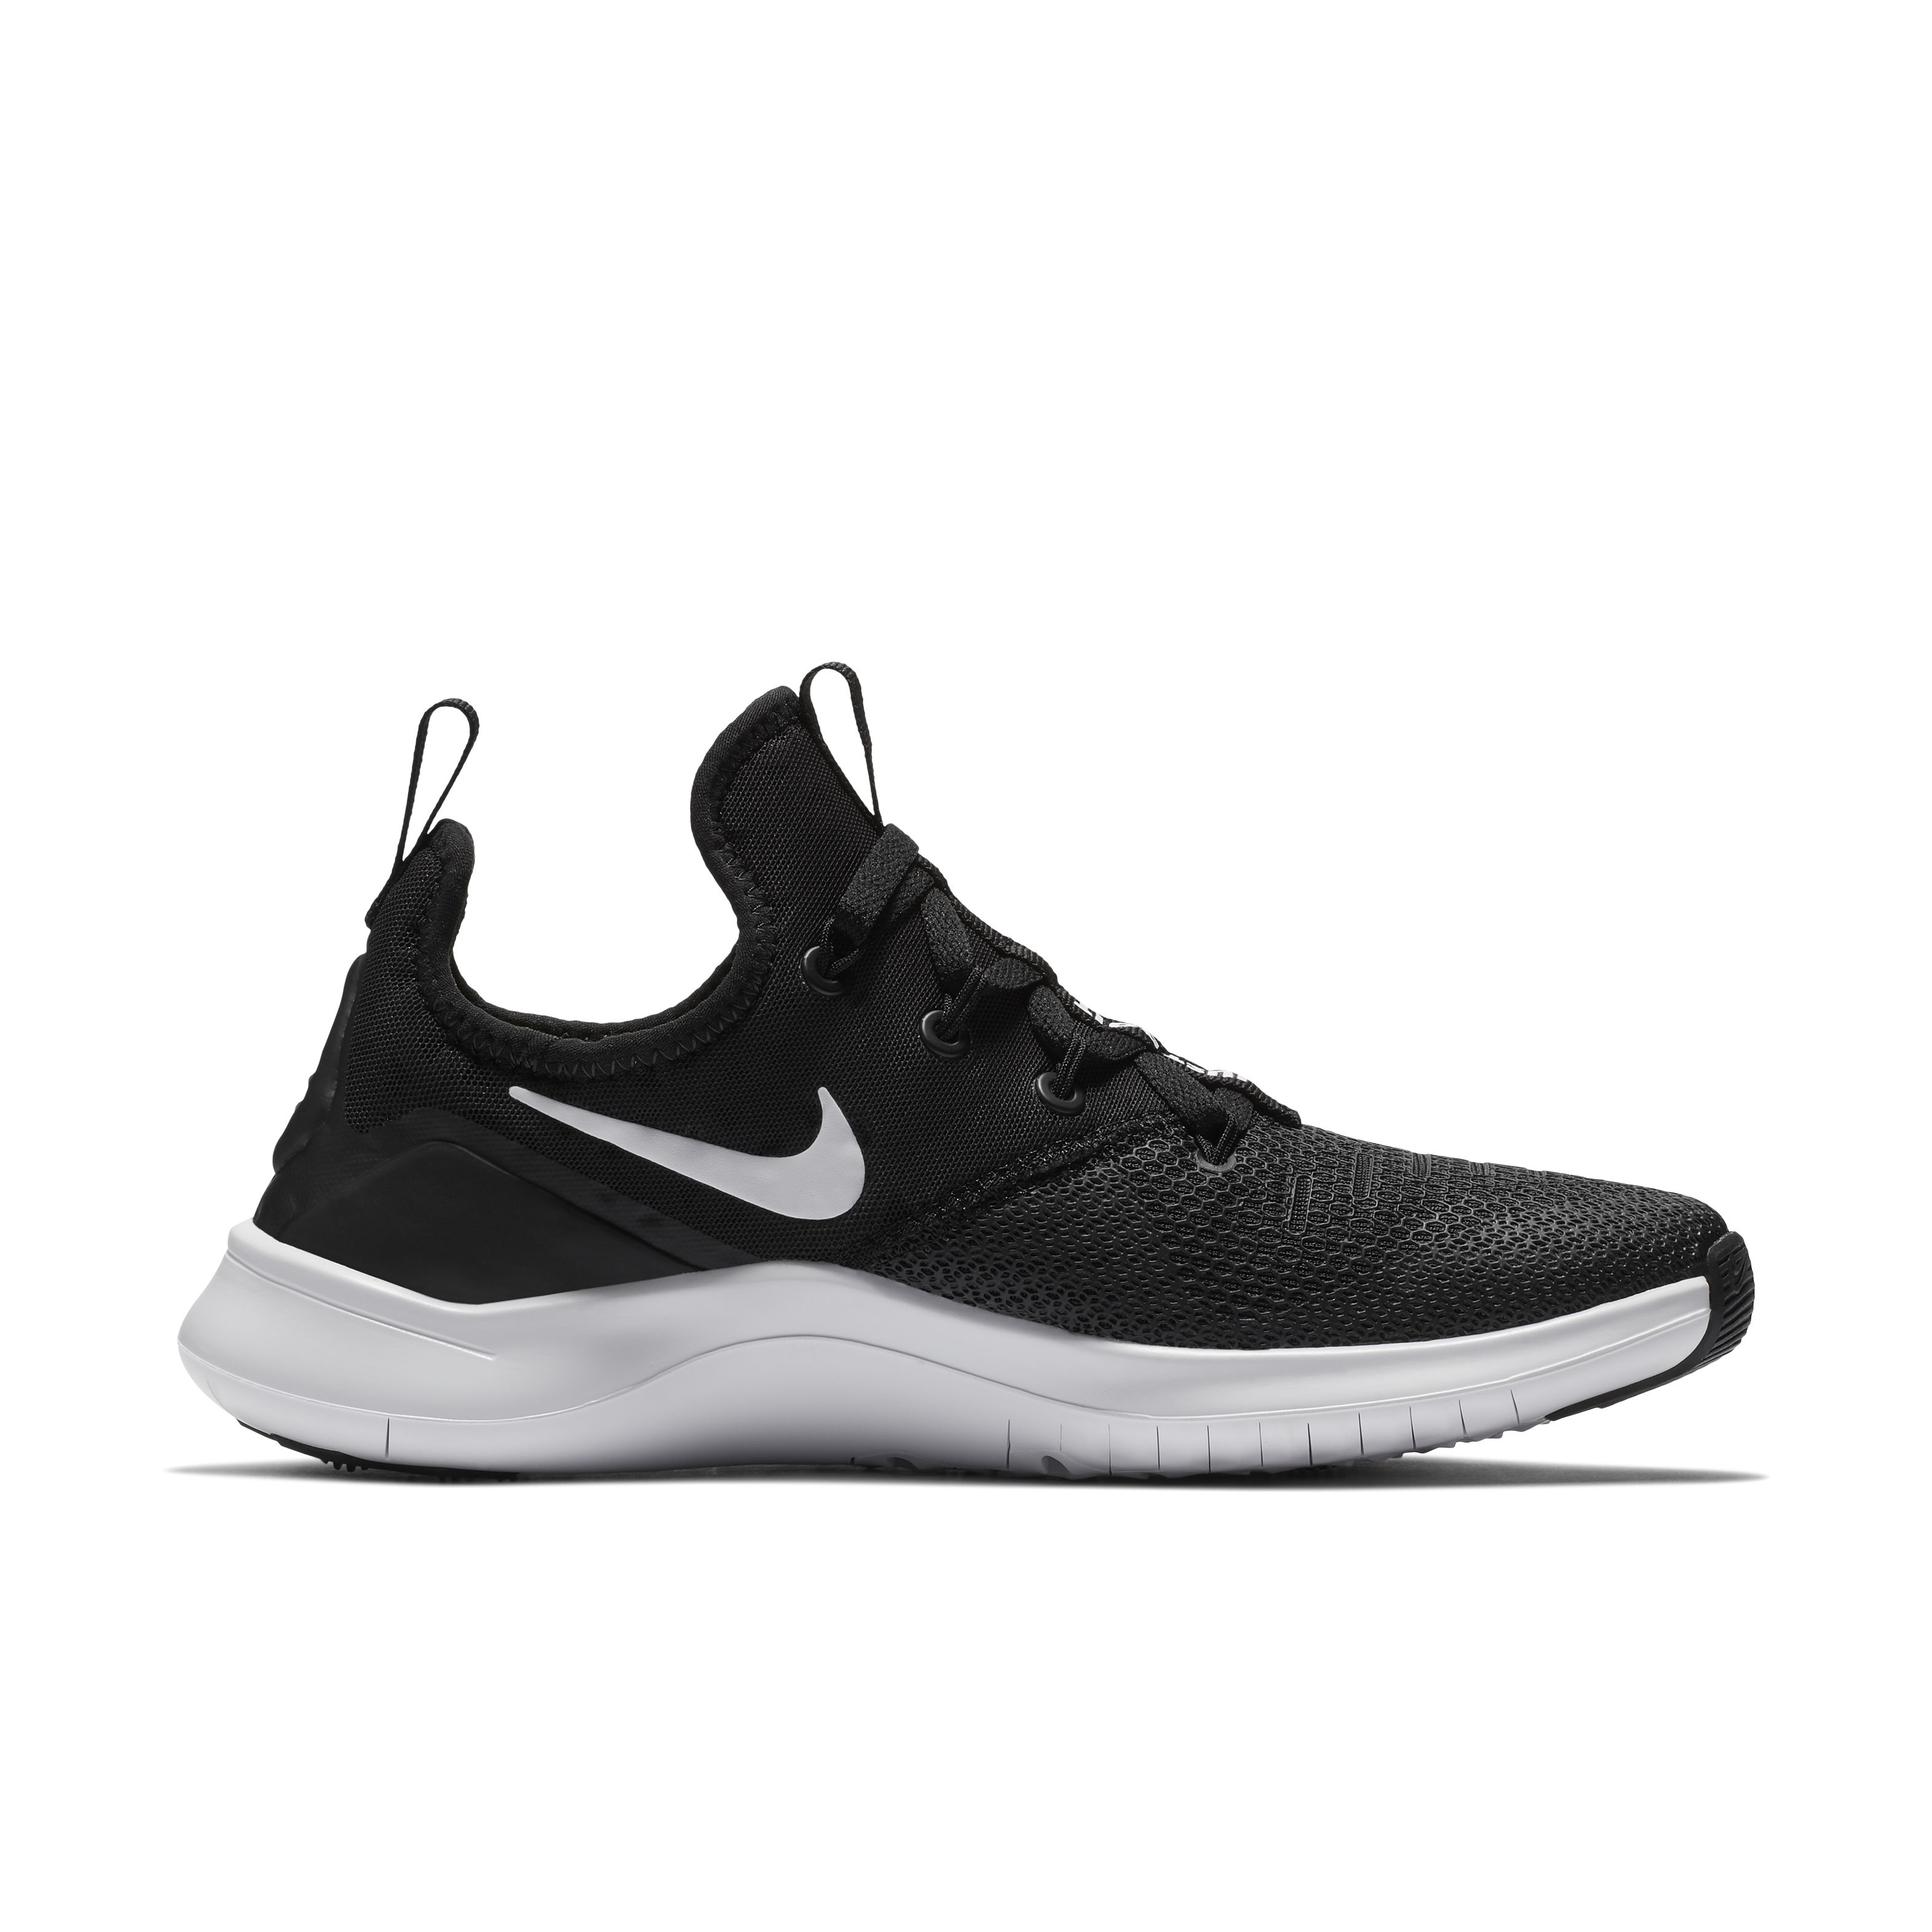 d4368ee62e08 Nike Running Shoes for Women – Best Running Shoes for Women 2019